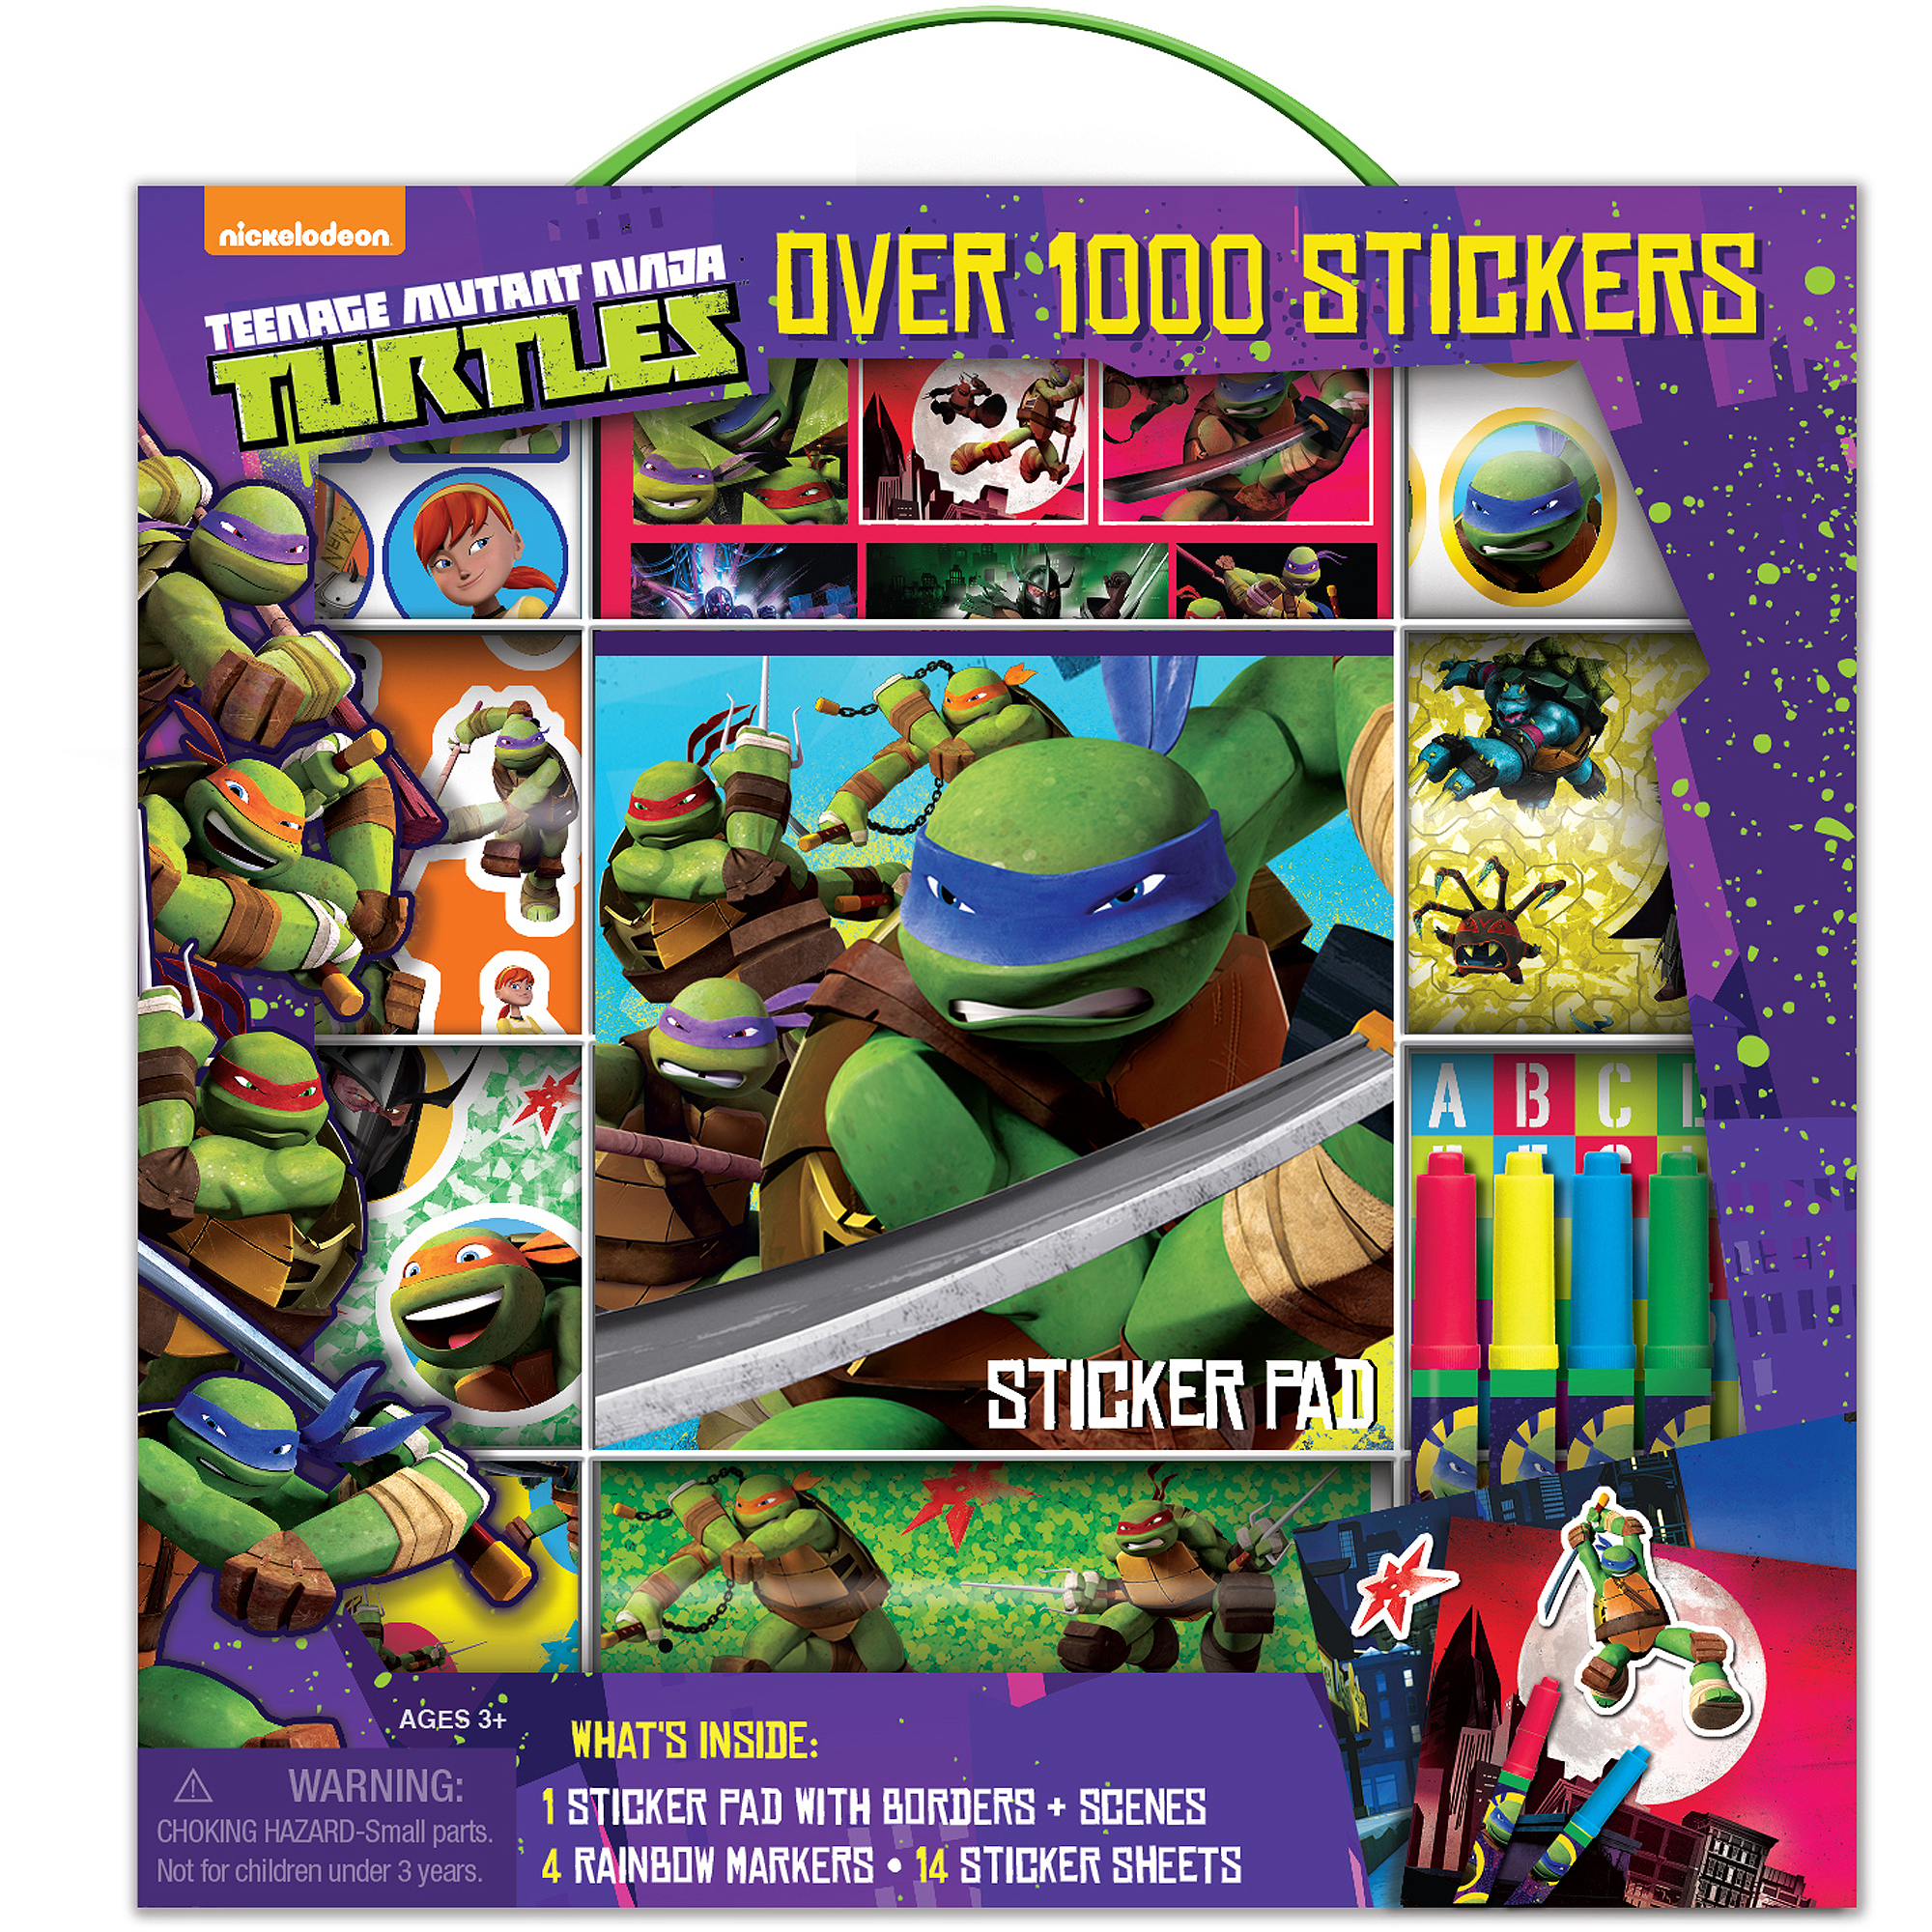 Bendon Bendon Teenage Mutant Ninja Turtles Sticker Box